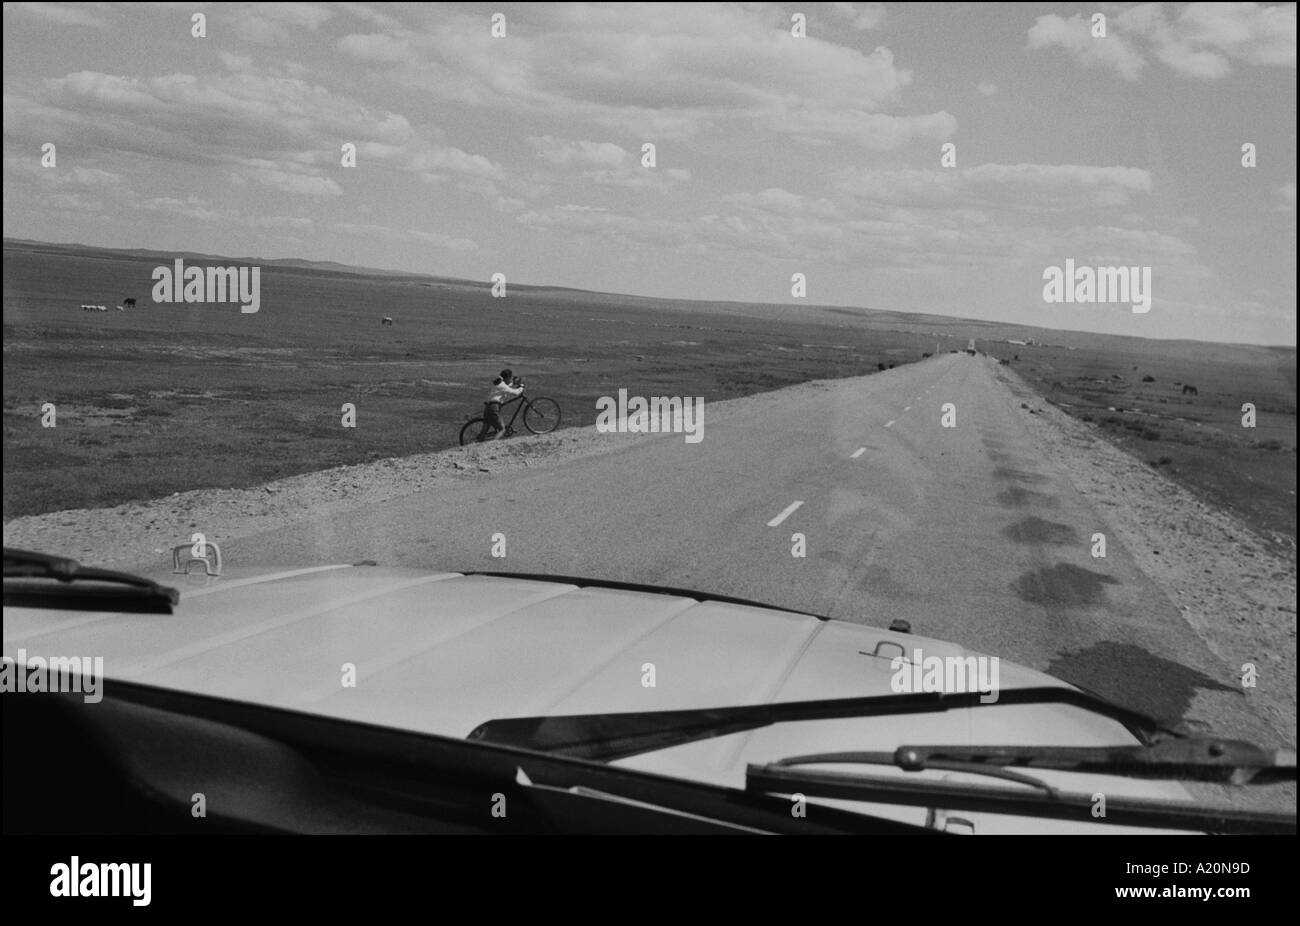 On the road in Ovorkhangai district, steppes, Mongolia - Stock Image